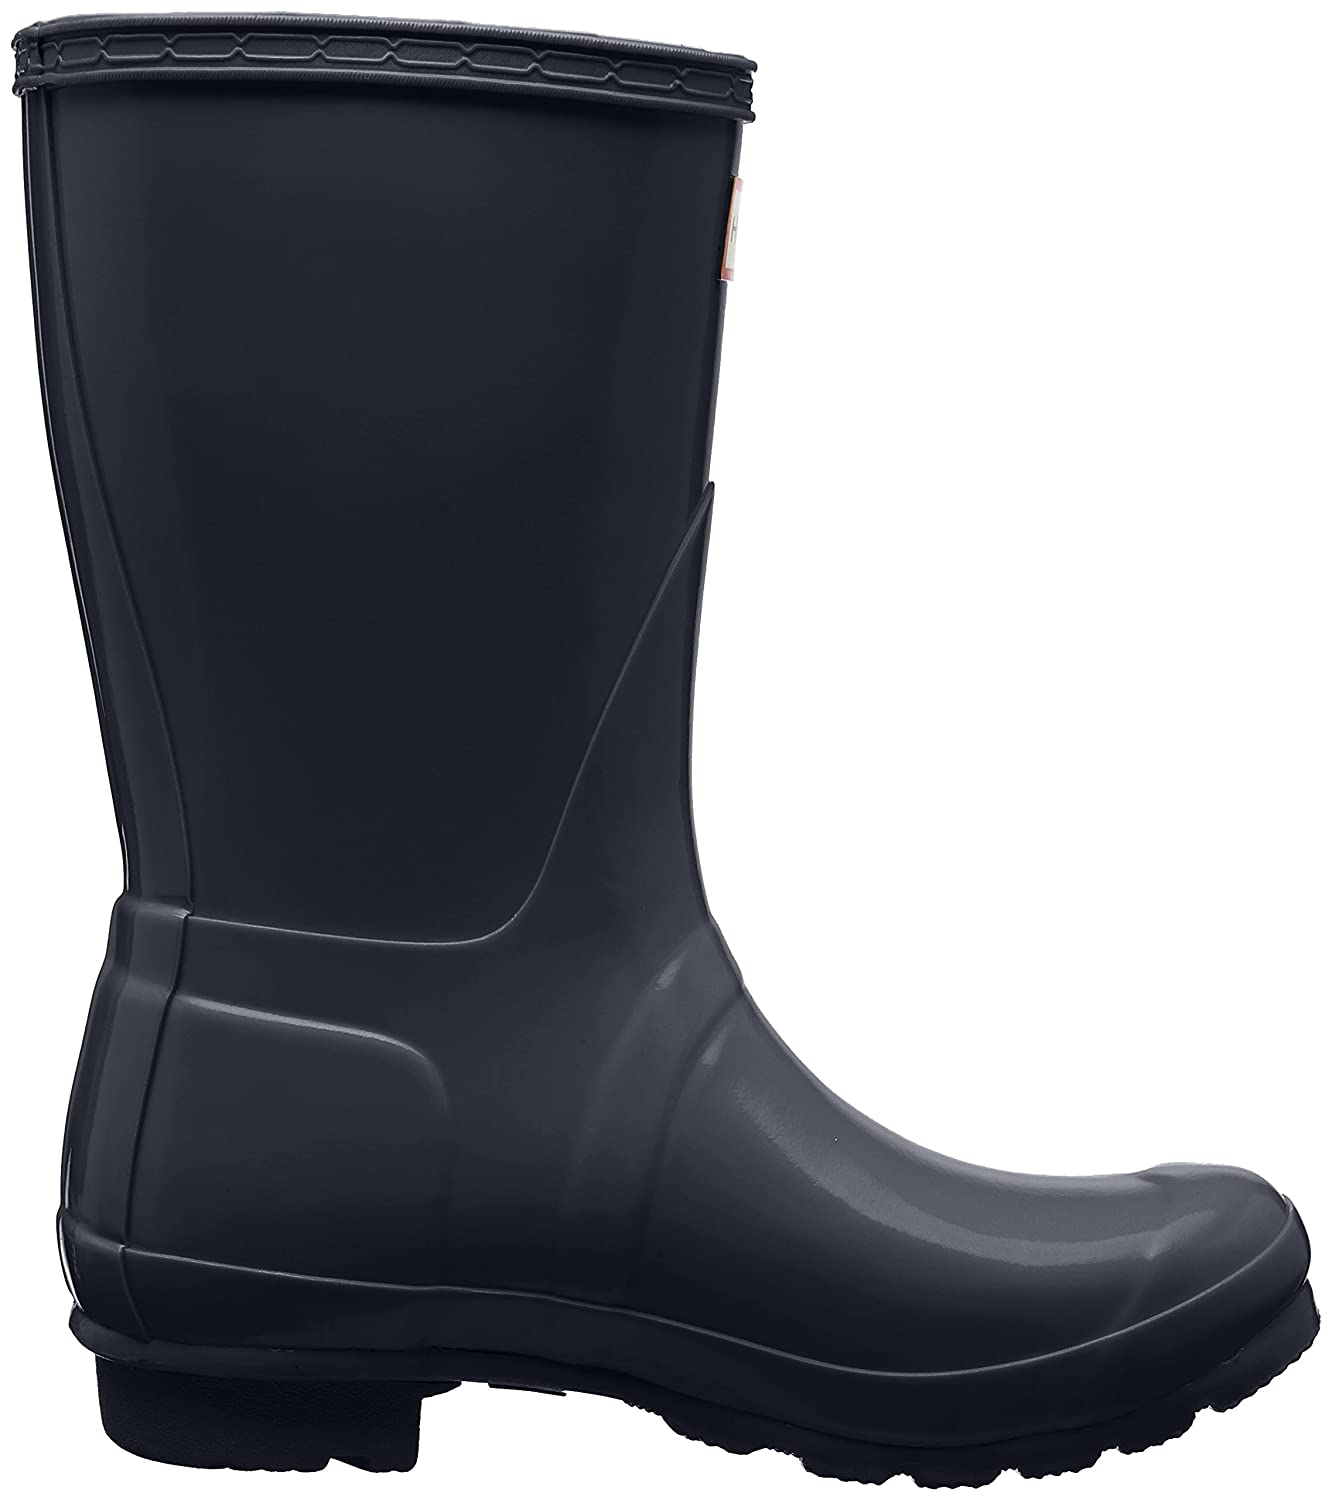 Hunter Women's Original Short Gloss Rain US|Dark Boots B01MRYBAW1 5 B(M) US|Dark Rain Slate 8aea1d